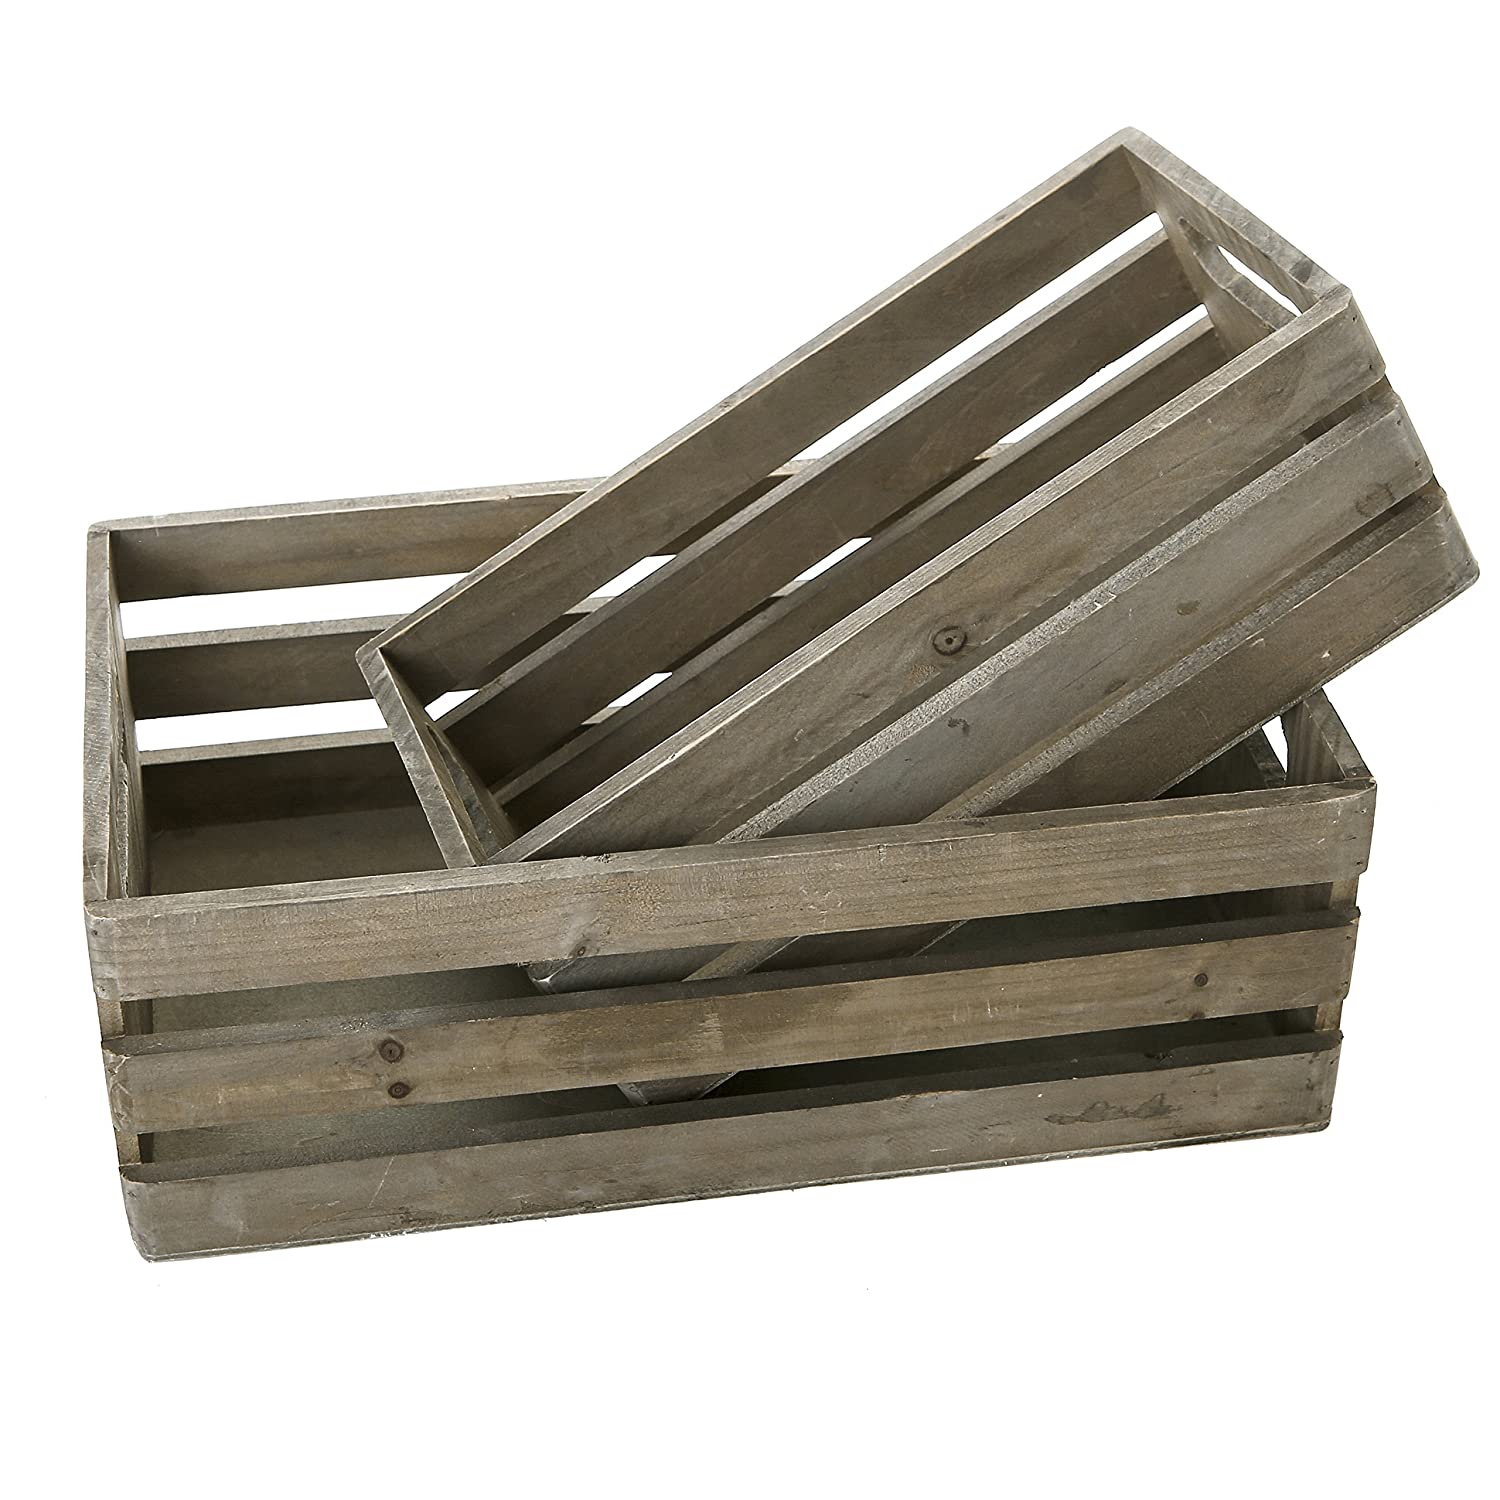 MyGift Distressed Wood Nesting Boxes, Storage Crates w/Handles, Set of 2, Gray